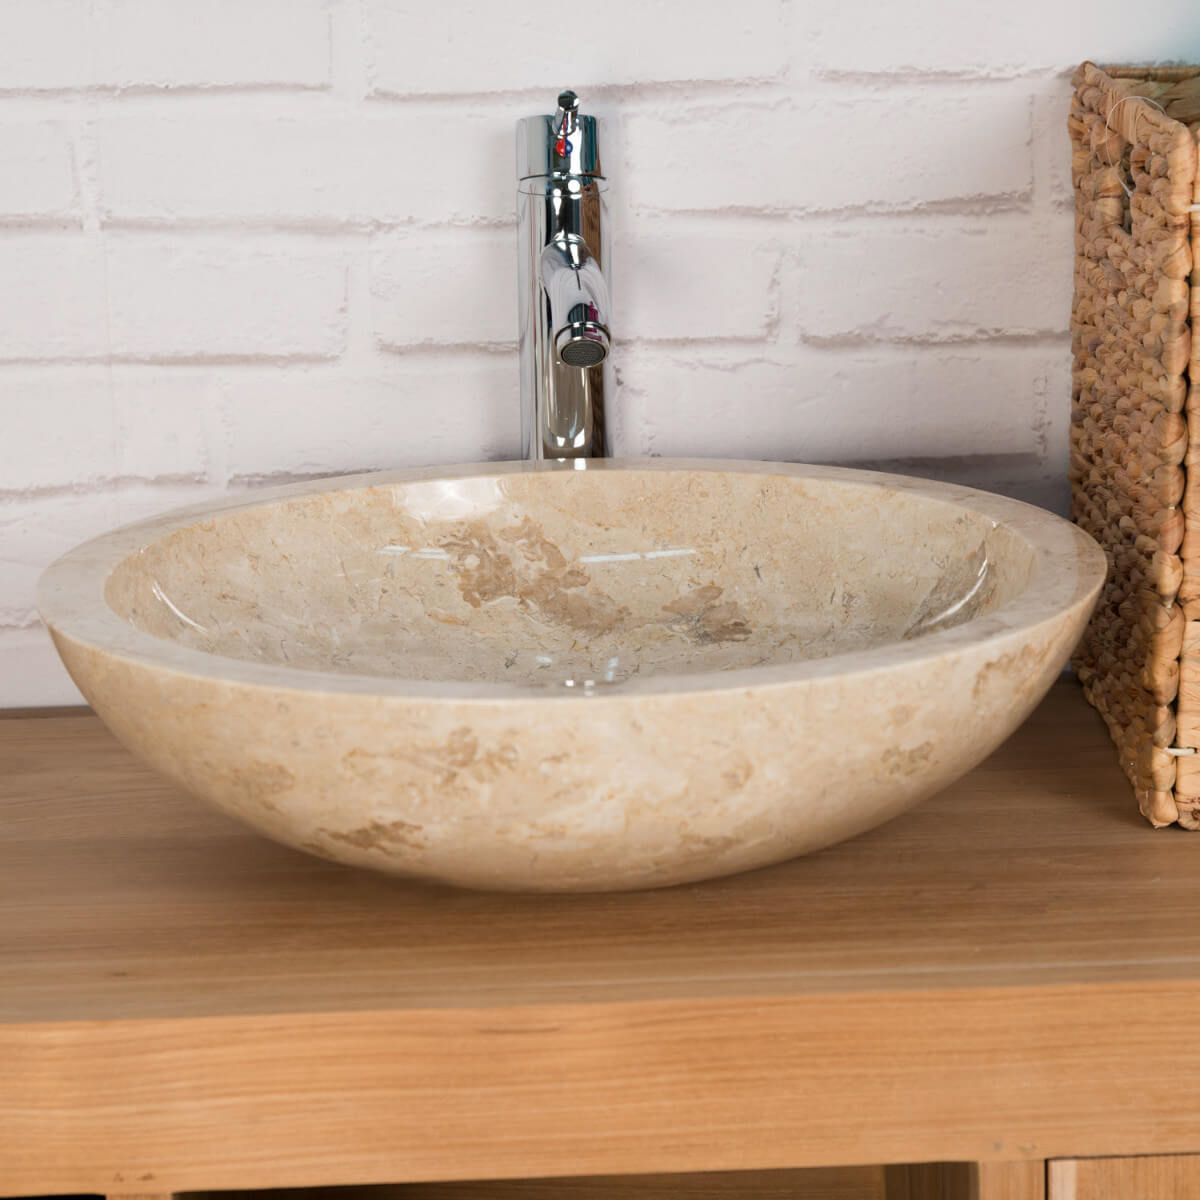 Vasque poser en marbre barcelone ronde cr me d 45 cm for Salle de bain epuree